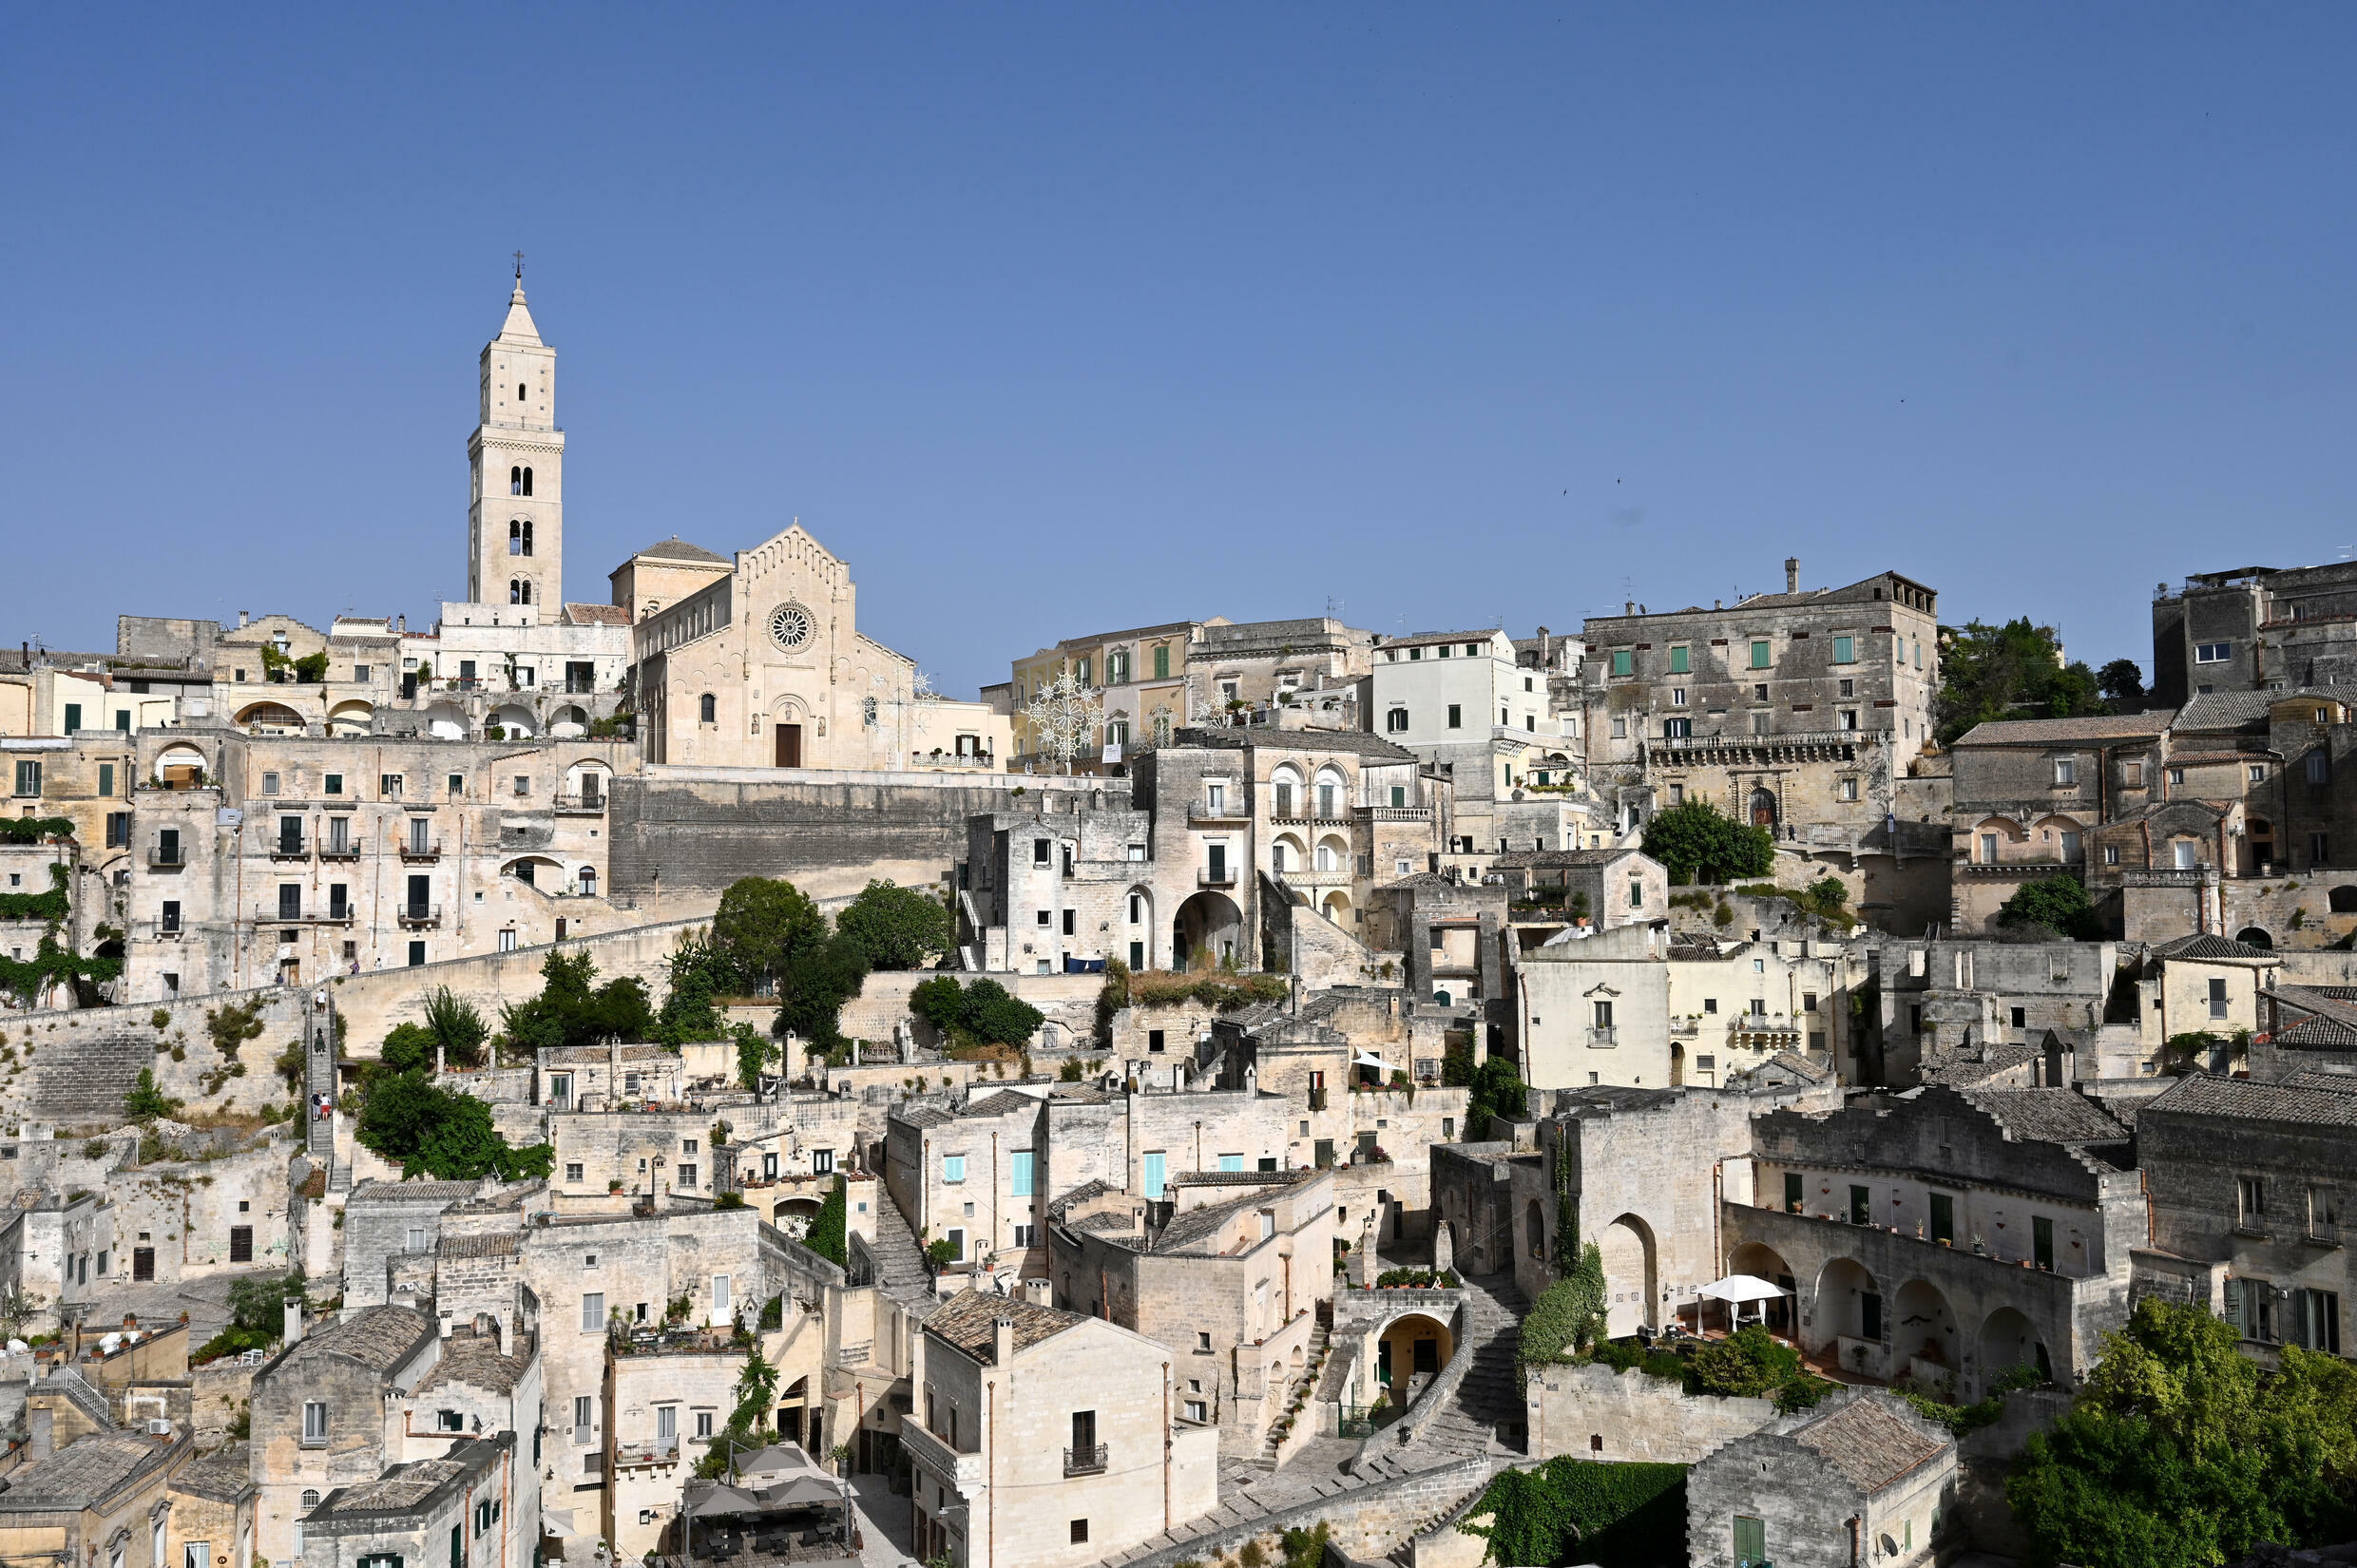 A view of the Italian city fo Matera where foreign ministers of the Group of 20 major economies are meeting